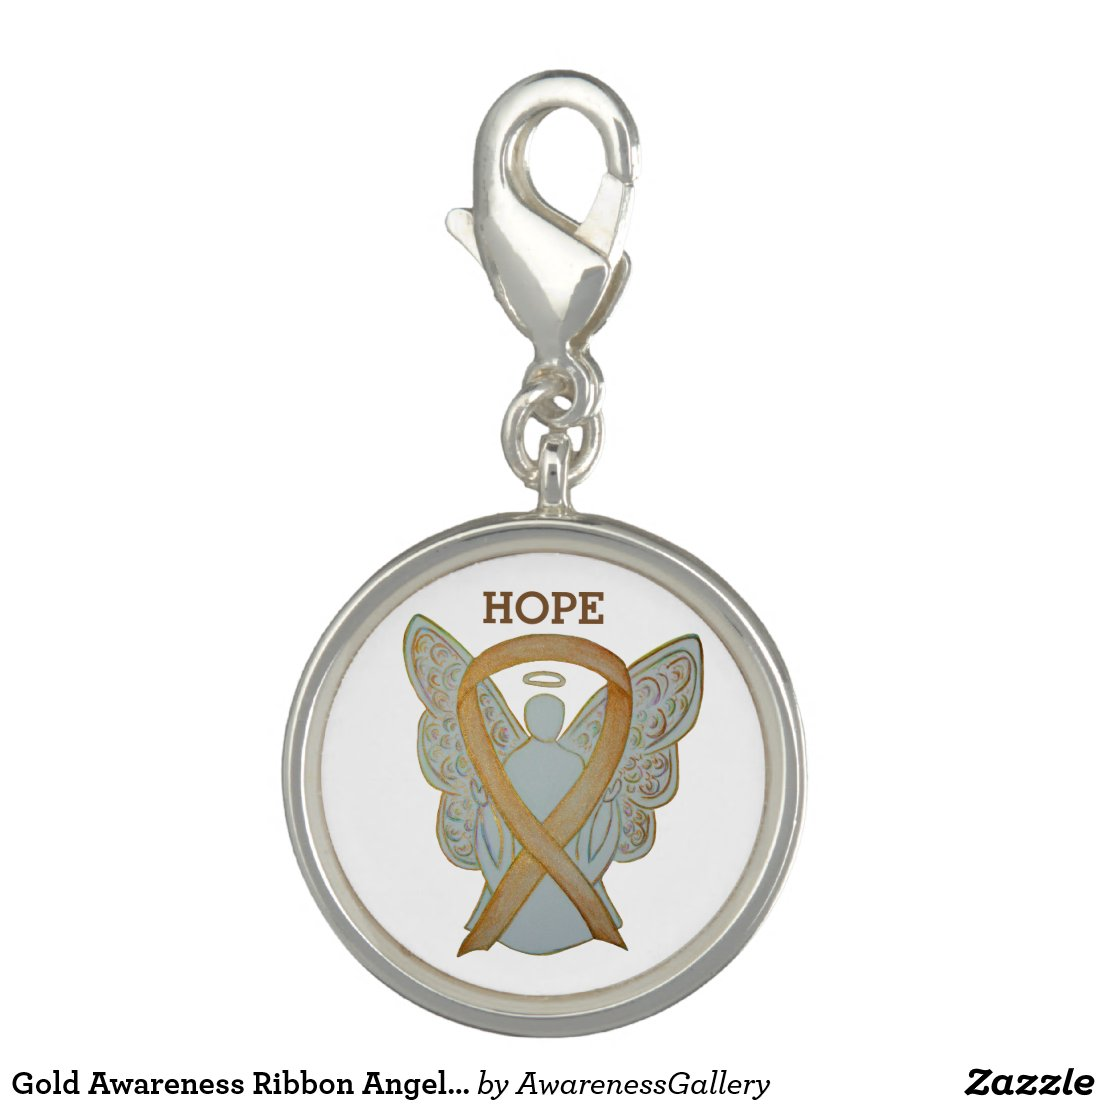 Gold Awareness Ribbon Angel Jewerly Charm Bracelet